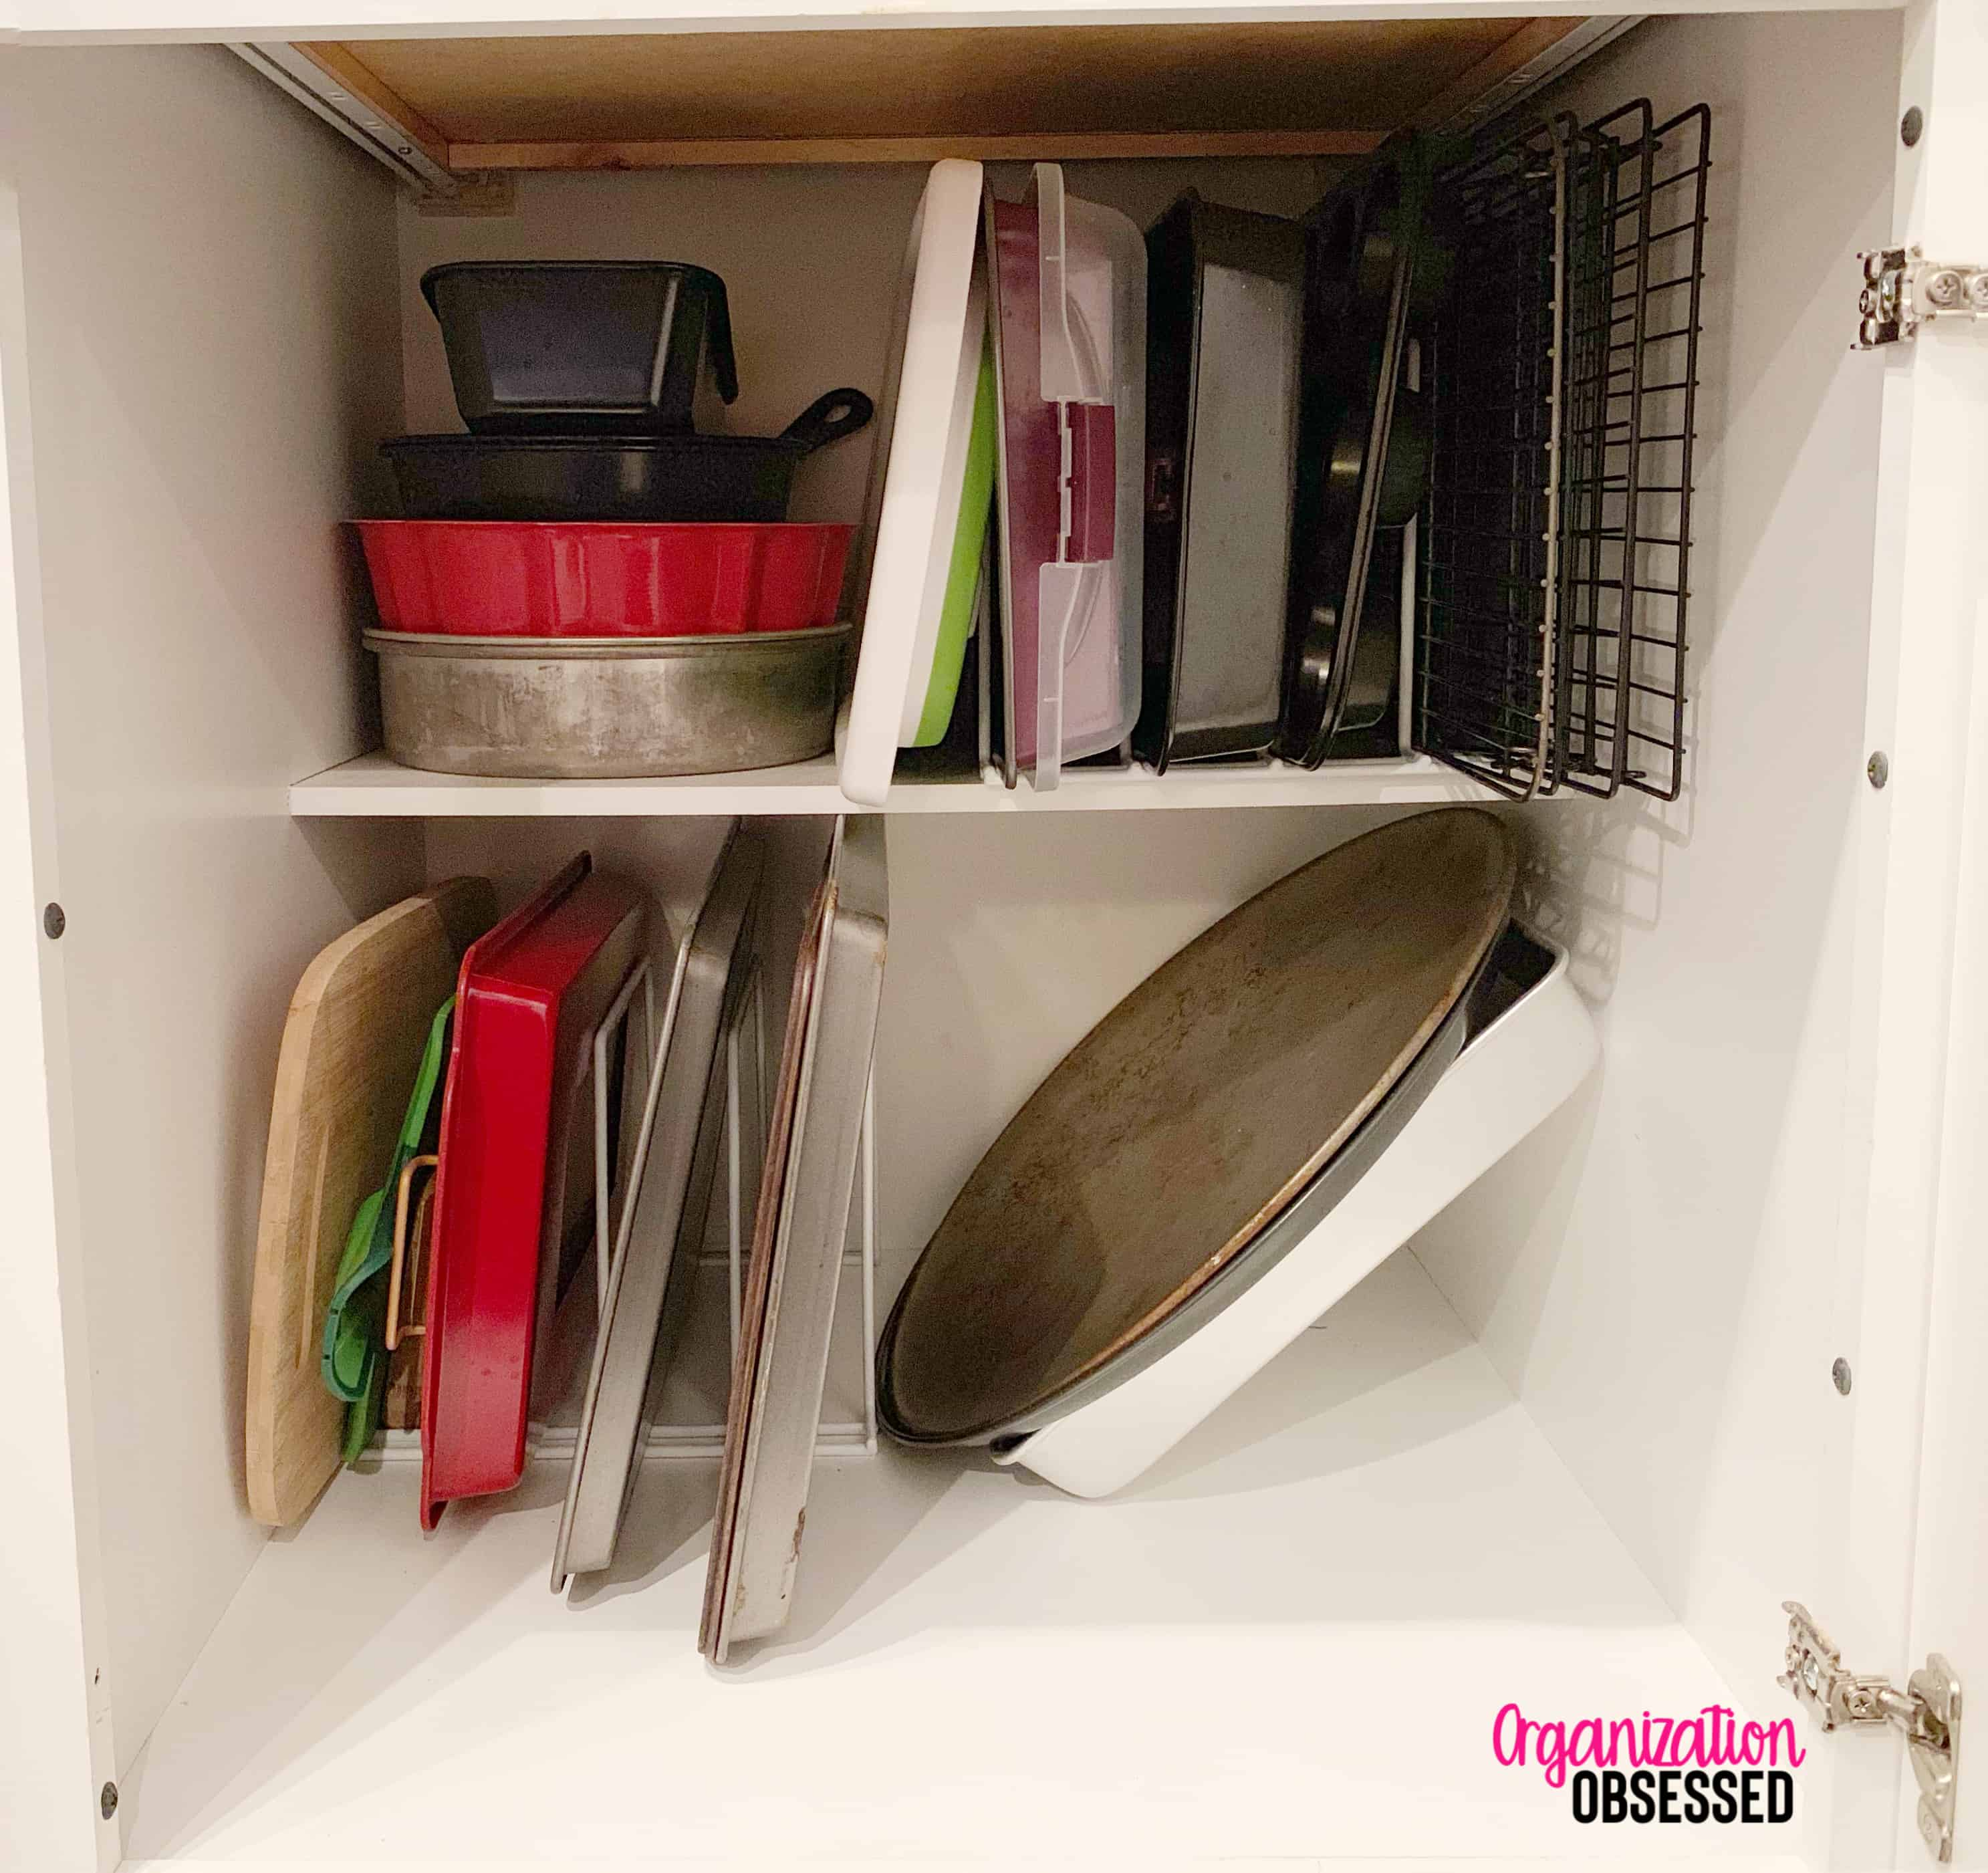 Cookie Sheet Kitchen Organizer for less than $20